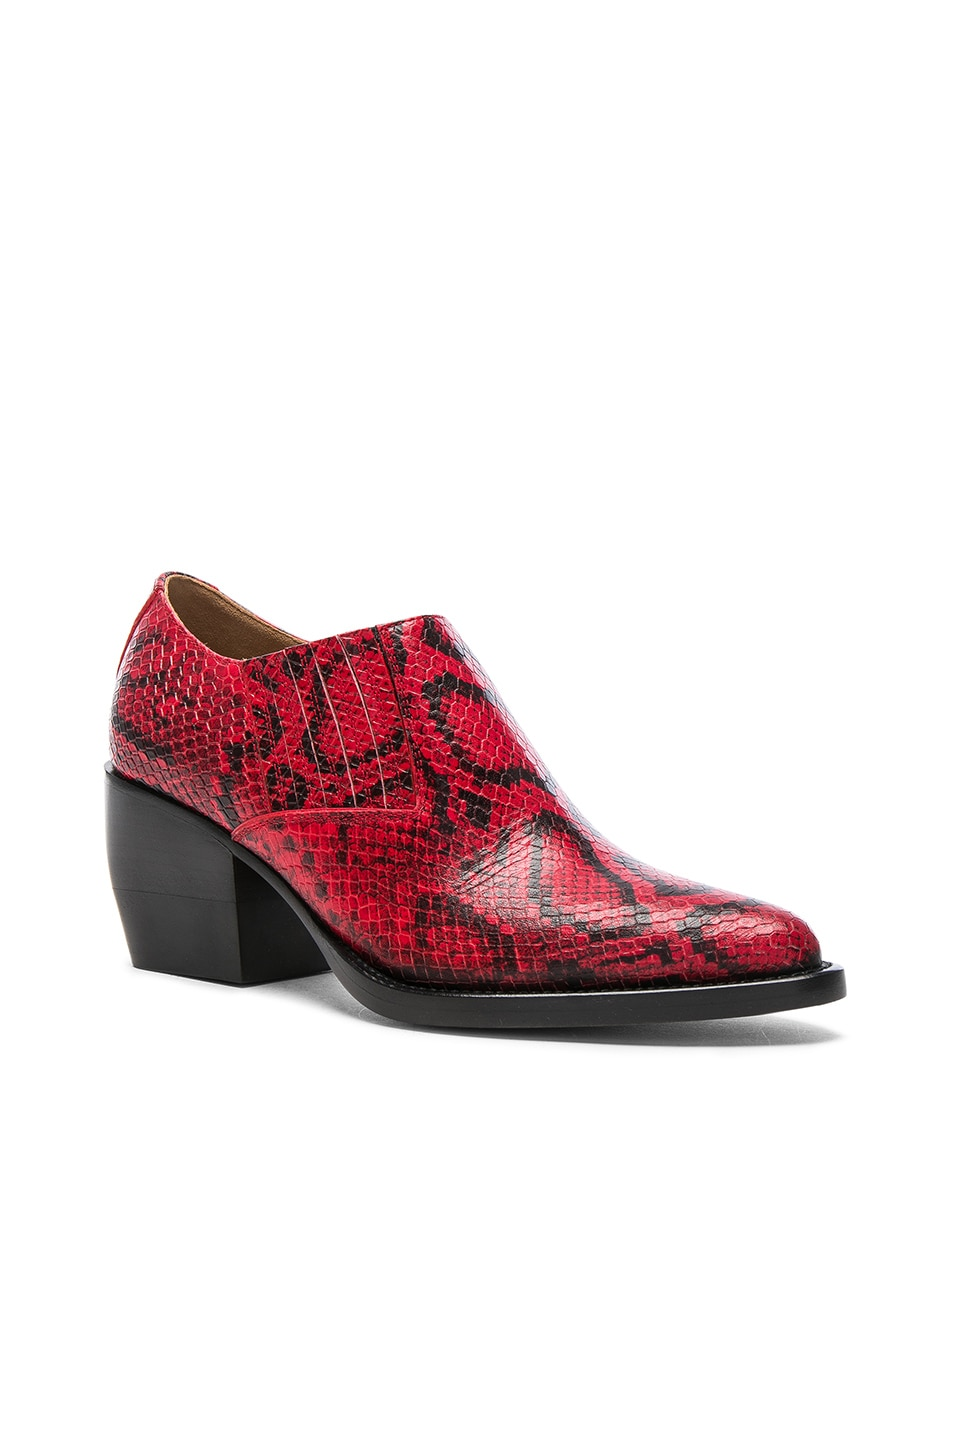 Image 2 of Chloe Rylee Python Print Leather Ankle Boots in Gypsy Red